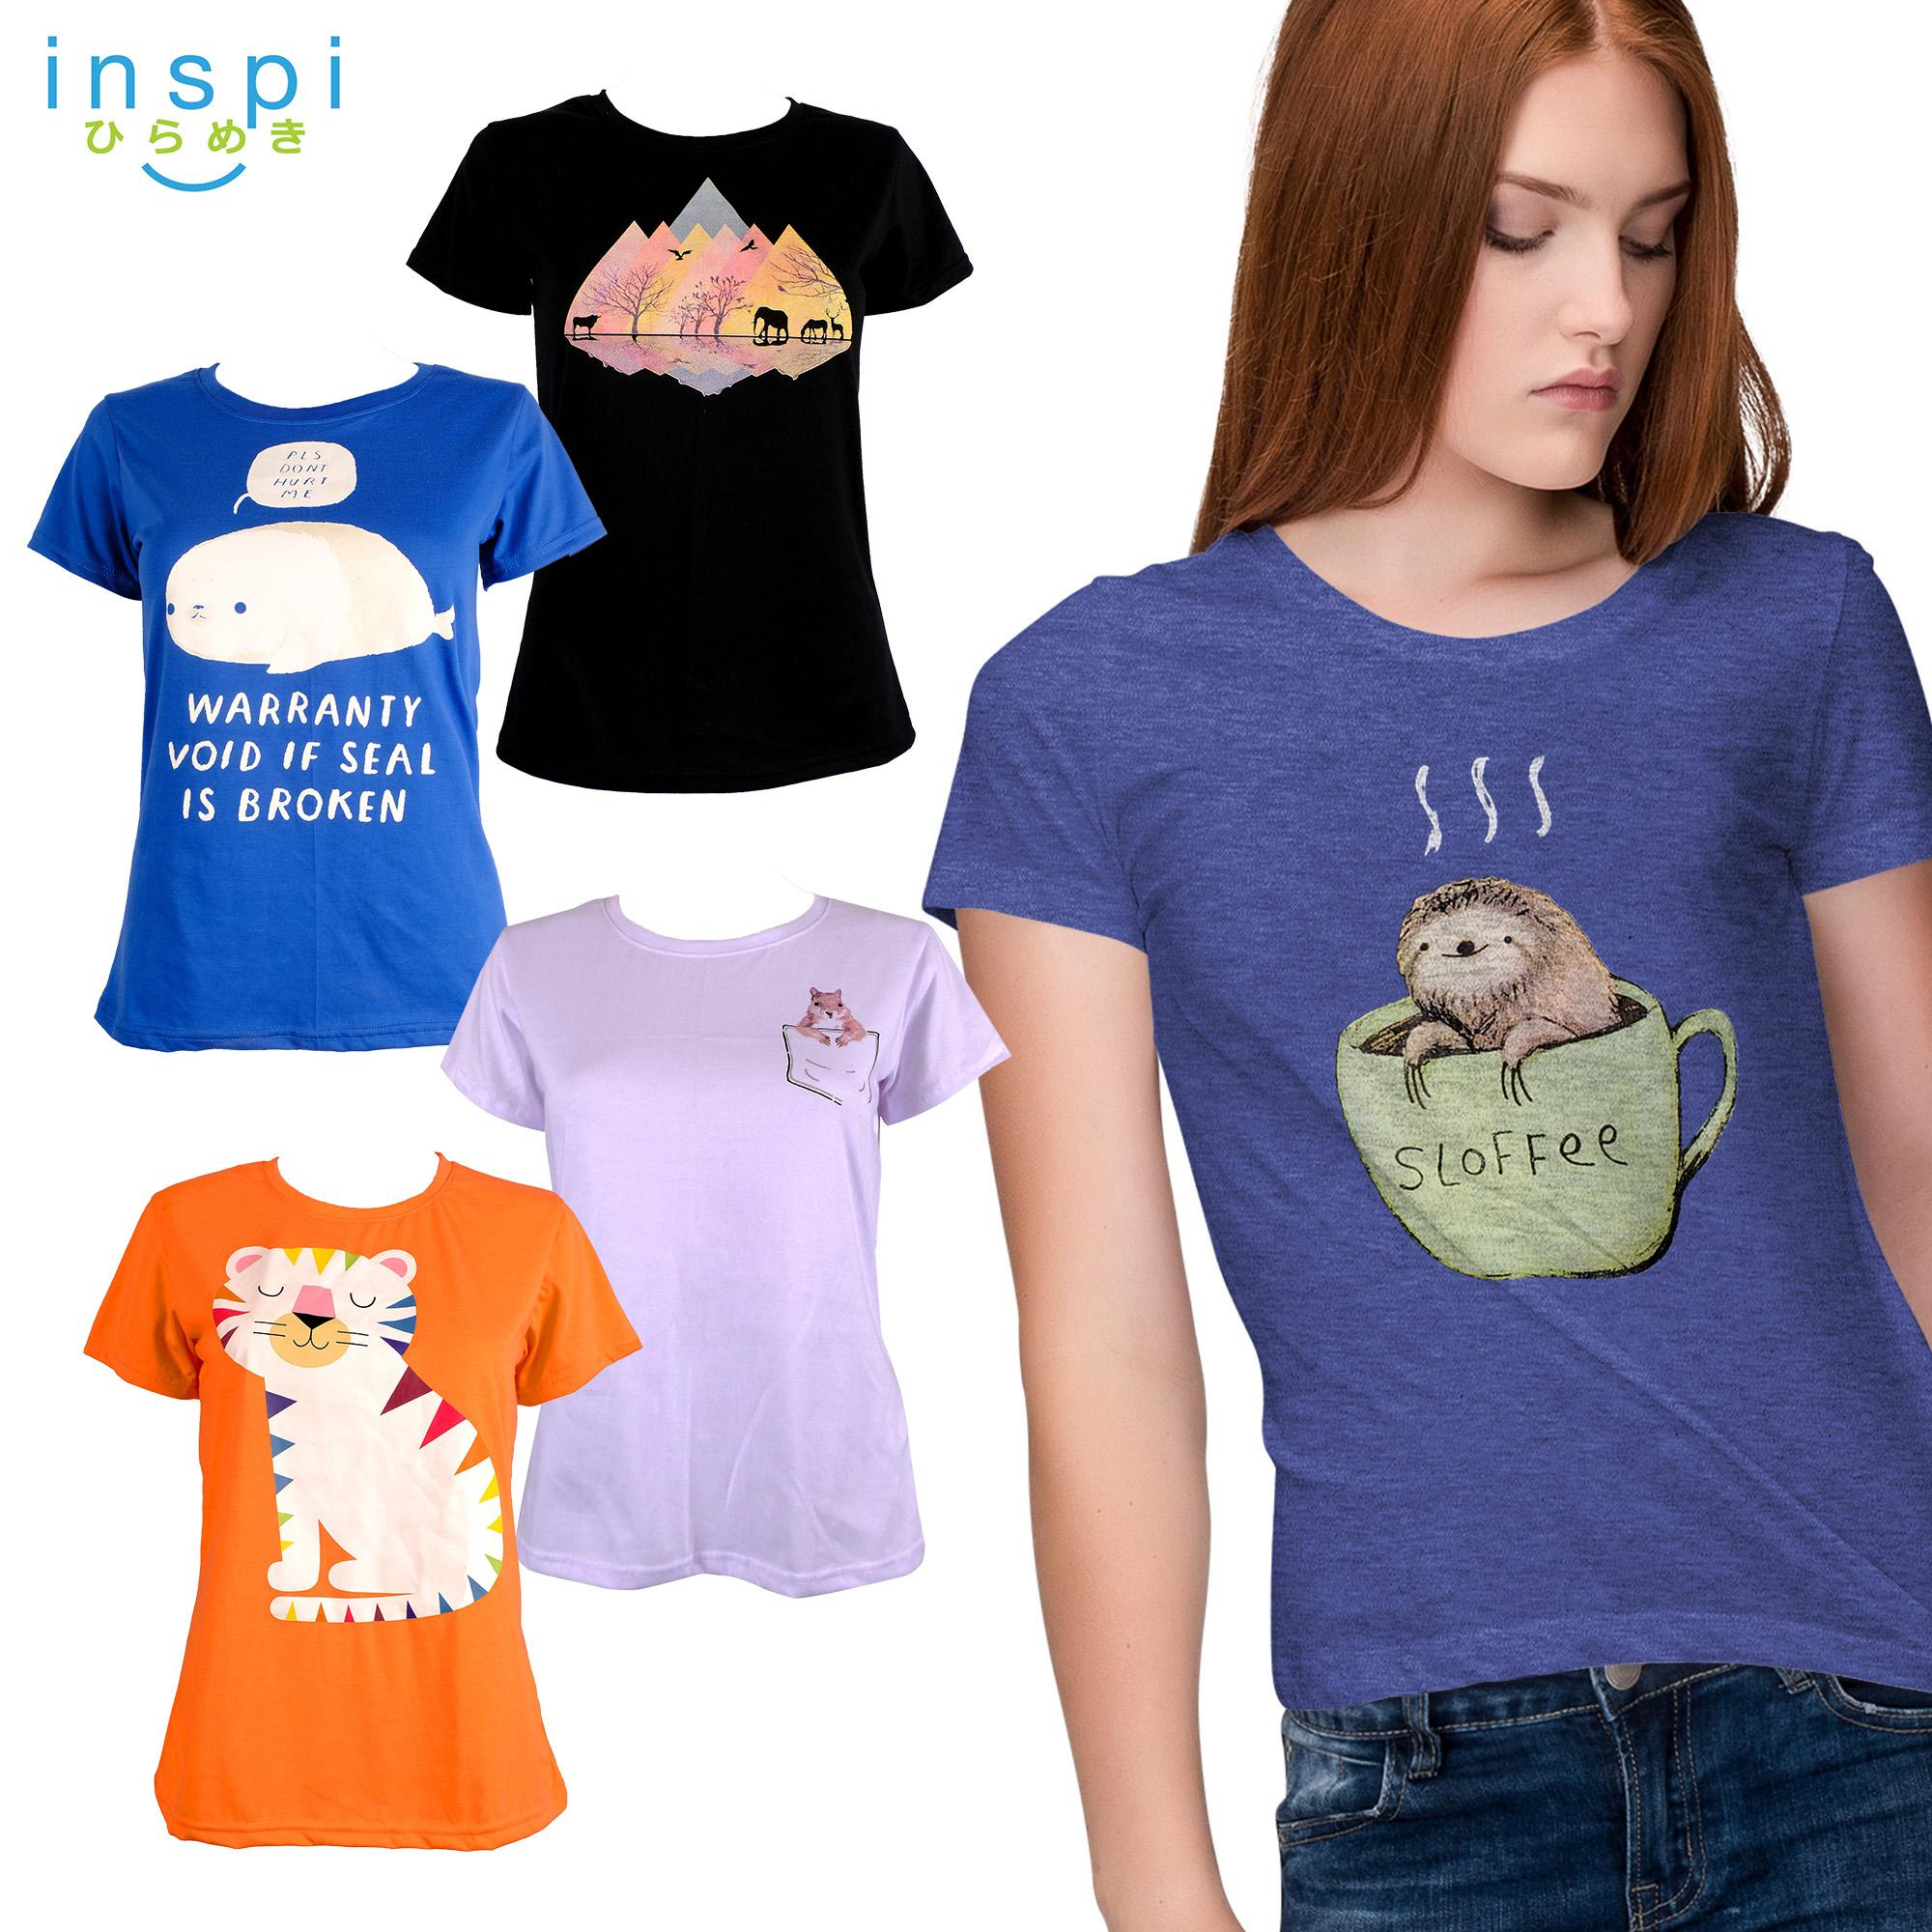 69c9e344e6dabf INSPI Tees Ladies Pet Collection tshirt printed graphic tee Ladies t shirt  shirts women tshirts for